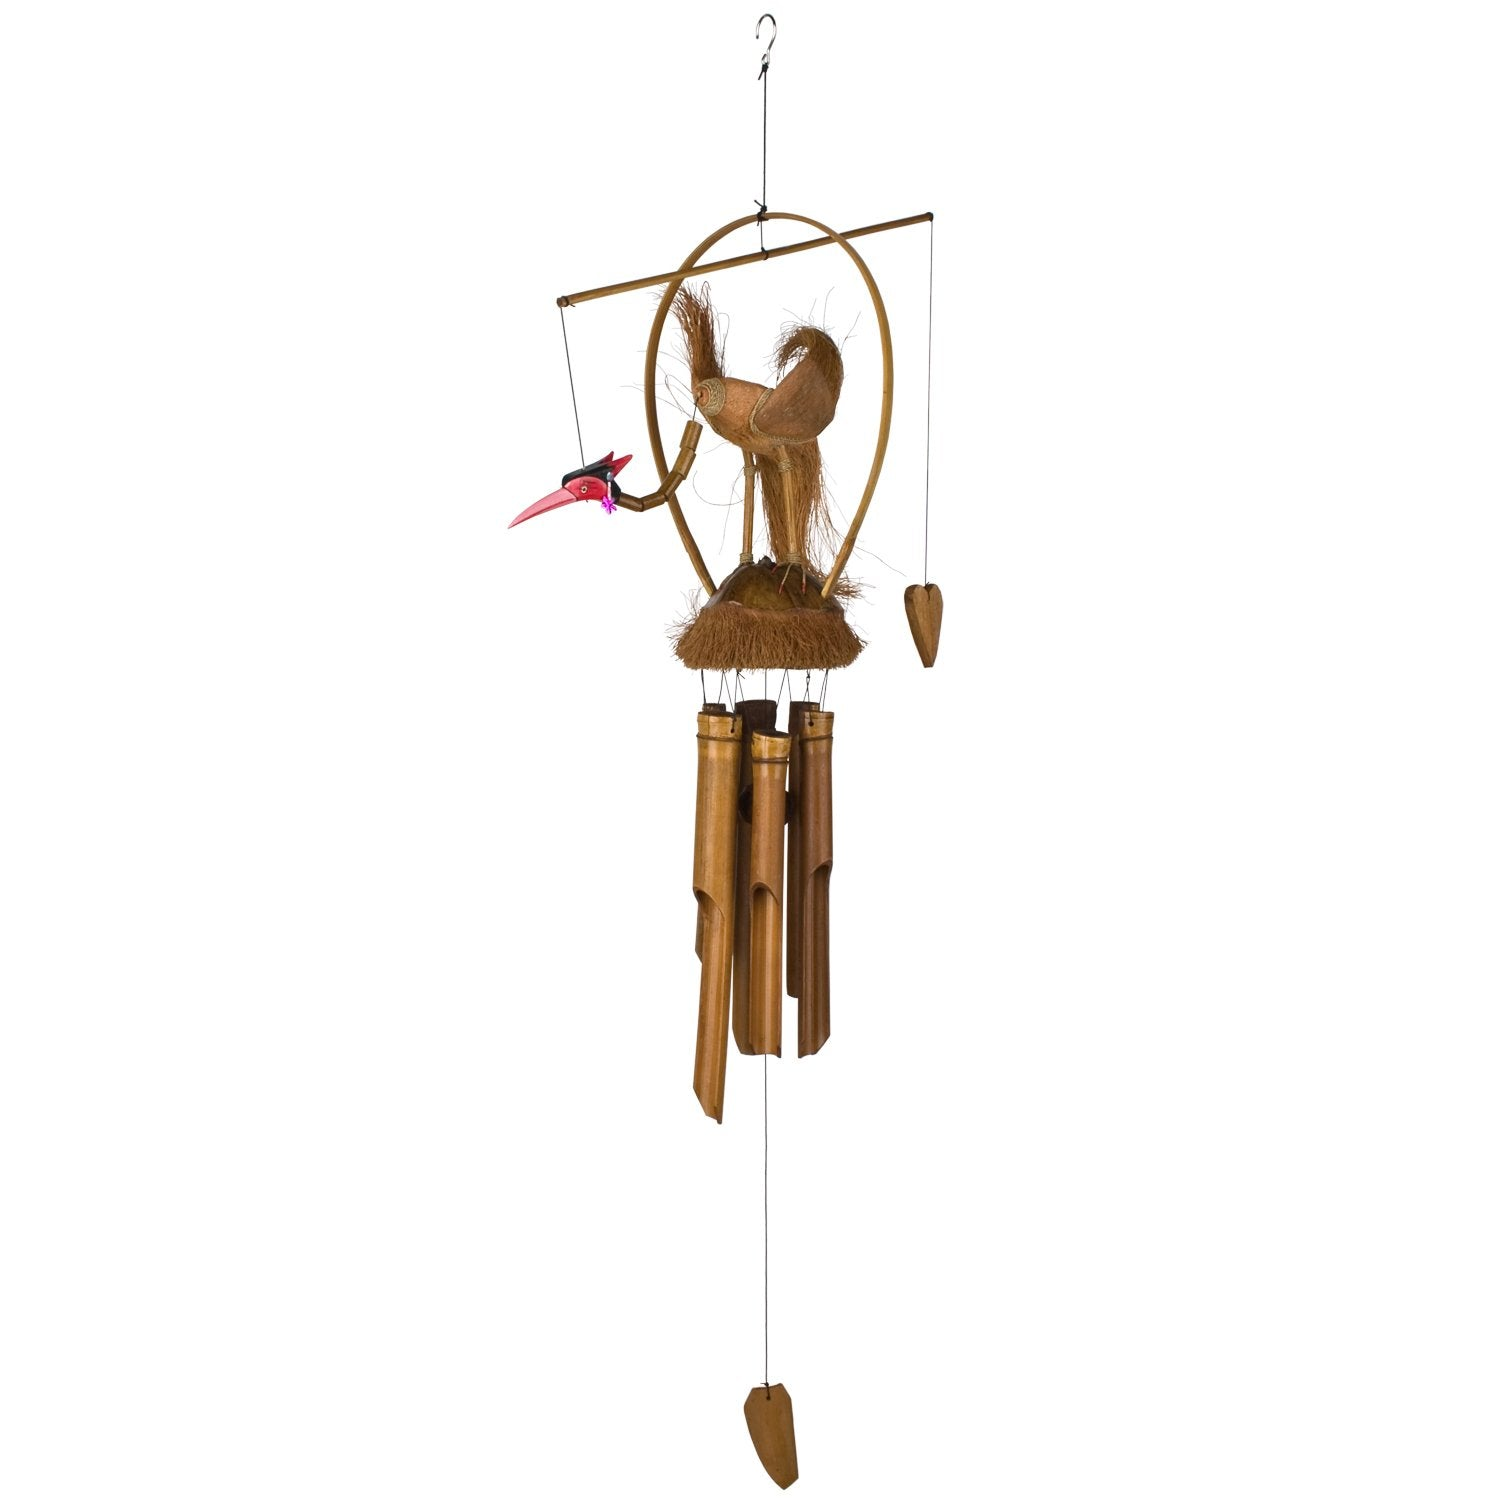 Gloria Gooney Bamboo Chime full product image